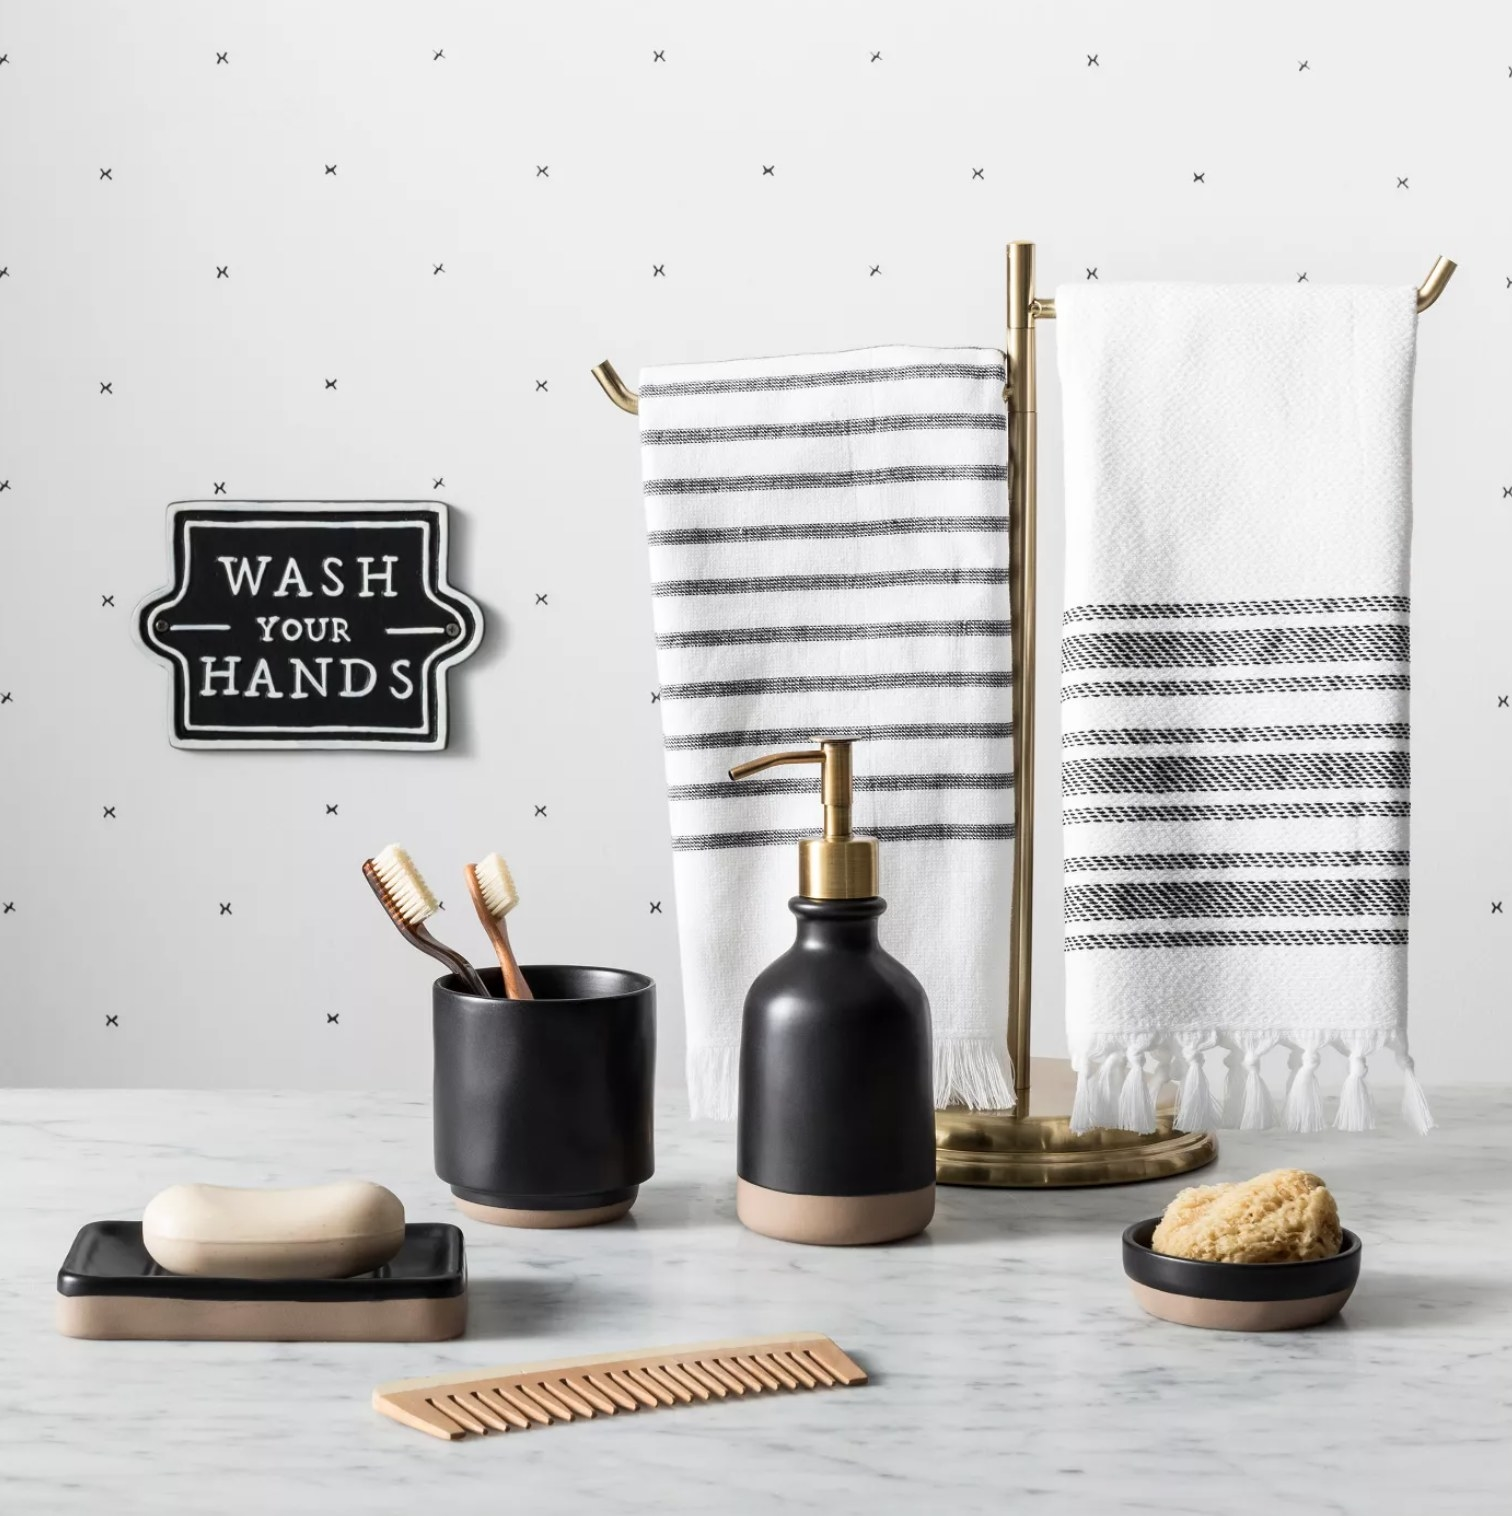 the black sign with white lettering hanging on a white wall with black dots over a counter with two towels hanging on a rack, a soap dispenser, soap dish, comb, toothbrush holder, and sponge holder all below it.